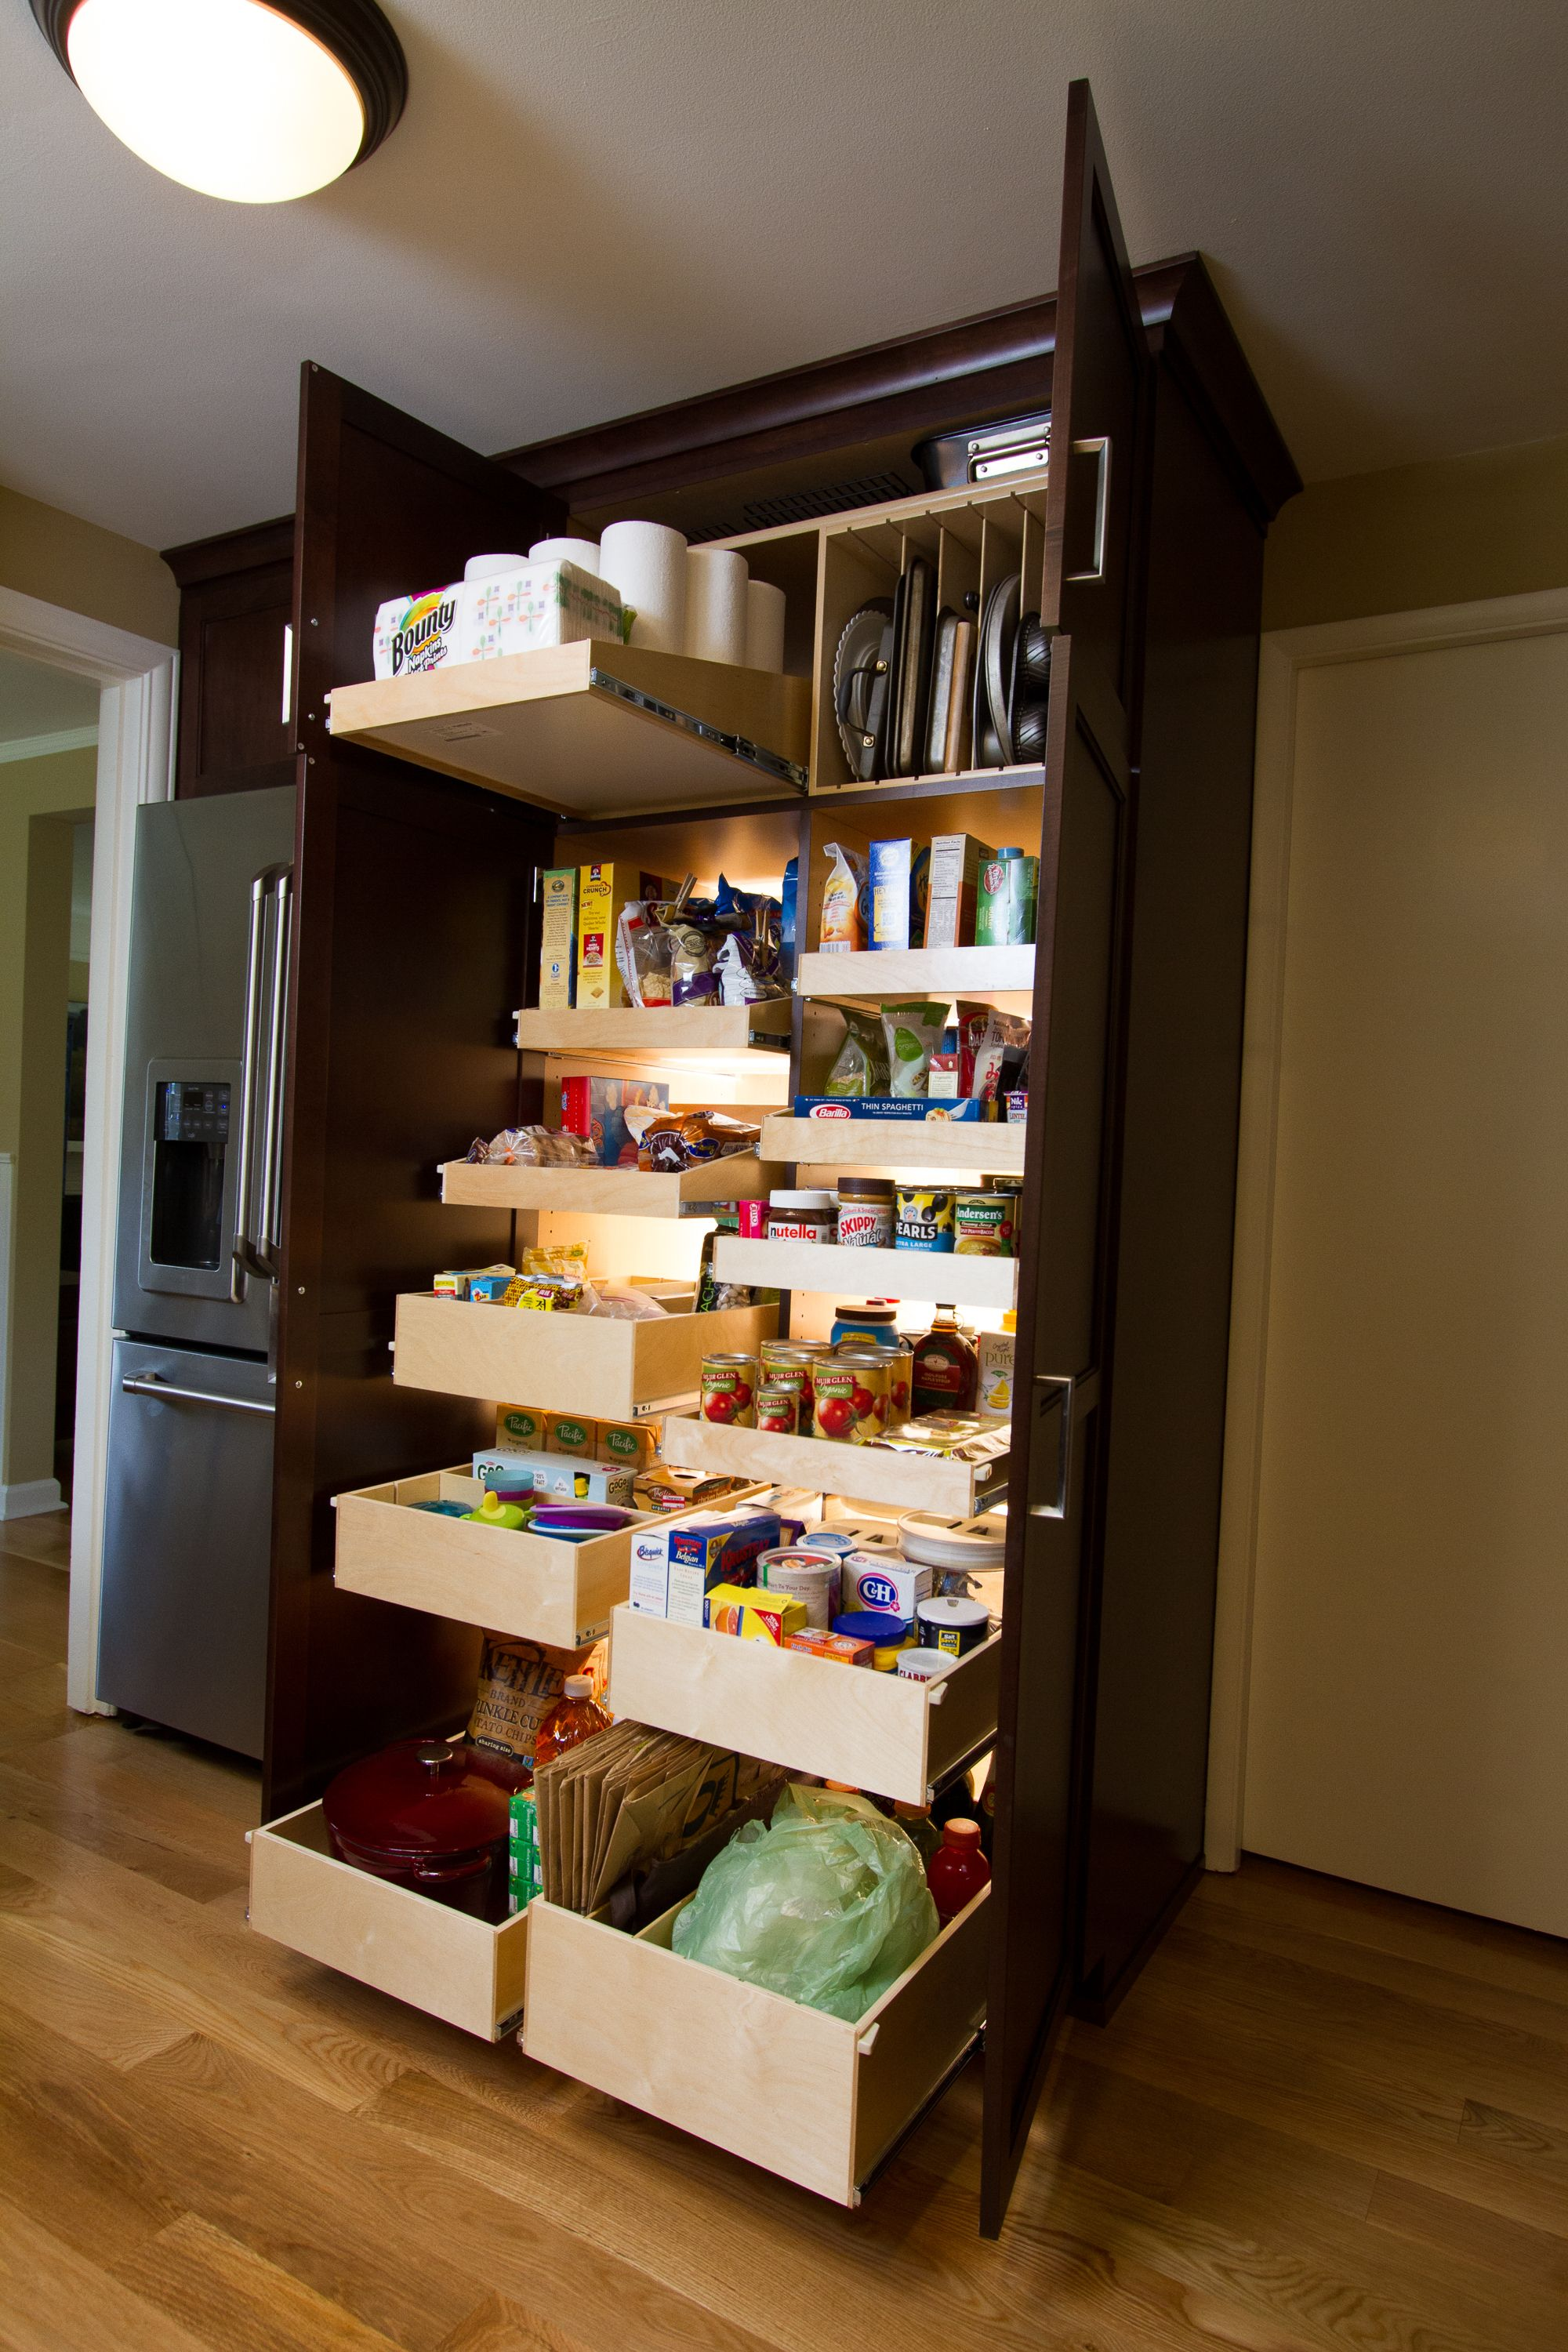 Reinstall Pull Out Pantry Shelves In 2020 Farmhouse Kitchen Cabinets Kitchen Cabinet Design Kitchen Cabinets Makeover